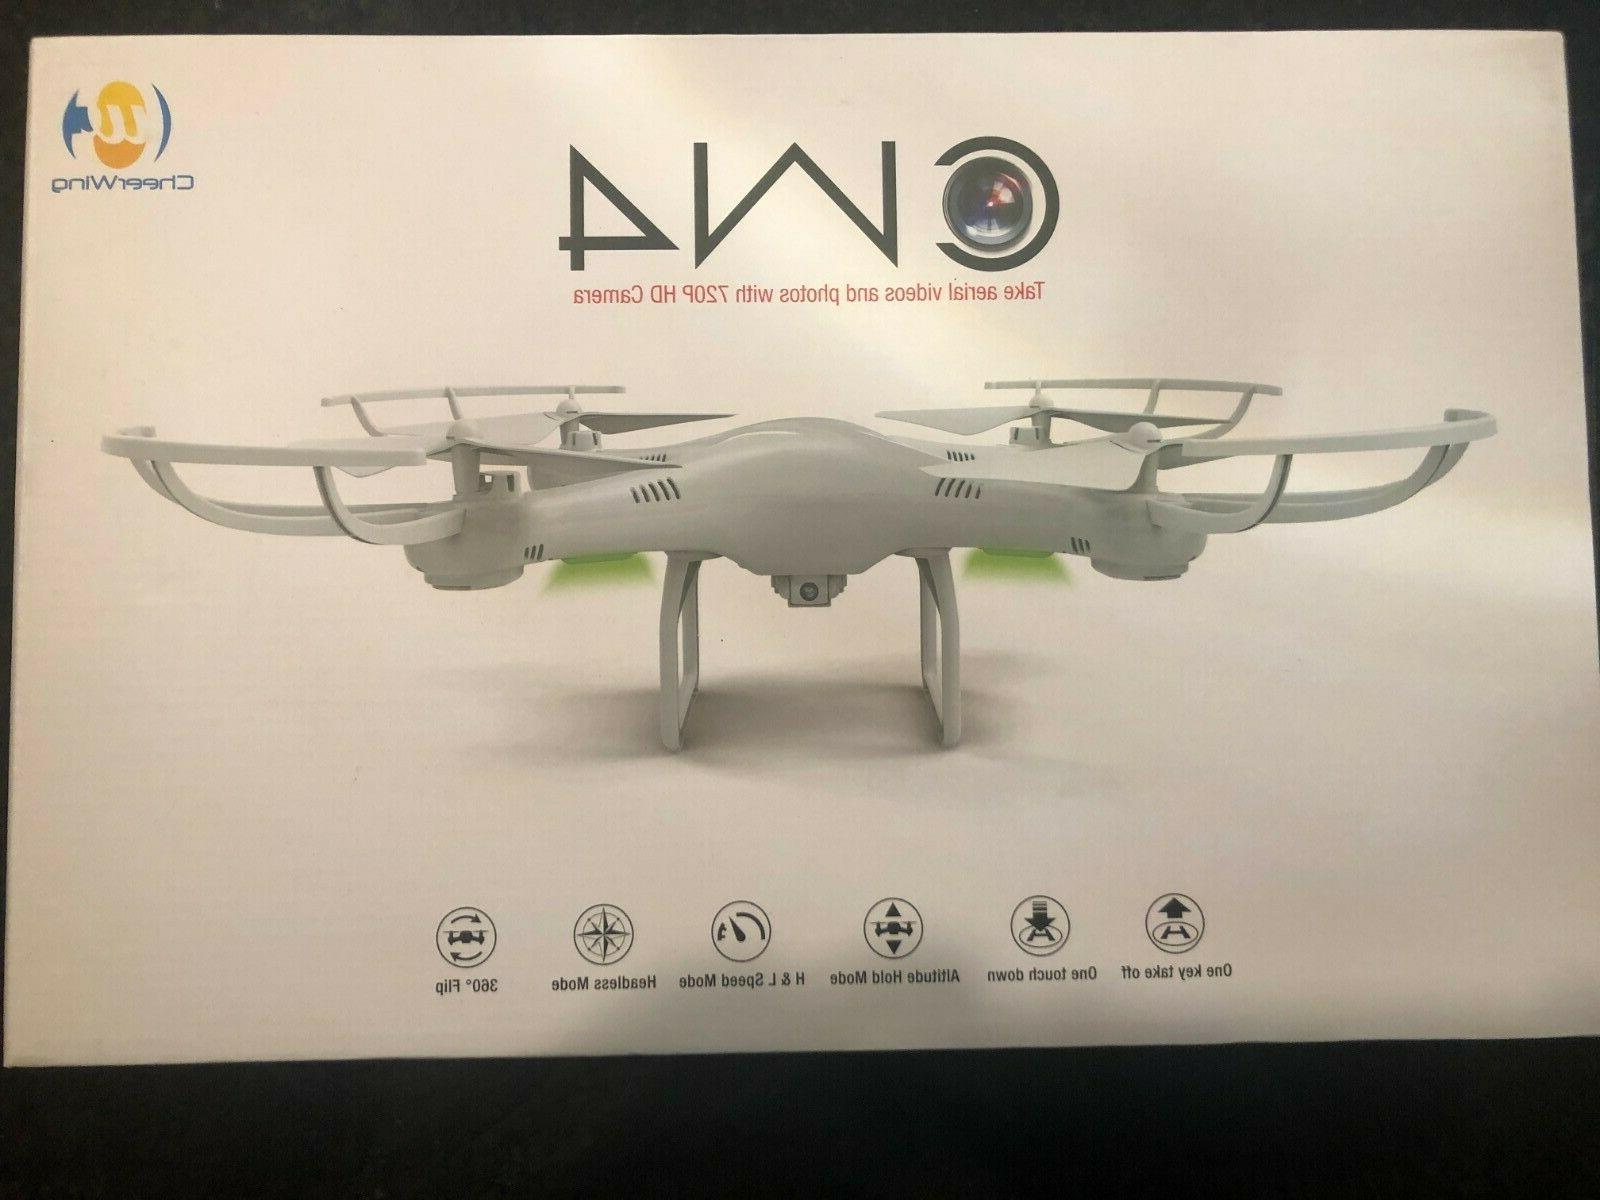 cw4 drone with 720p hd camera